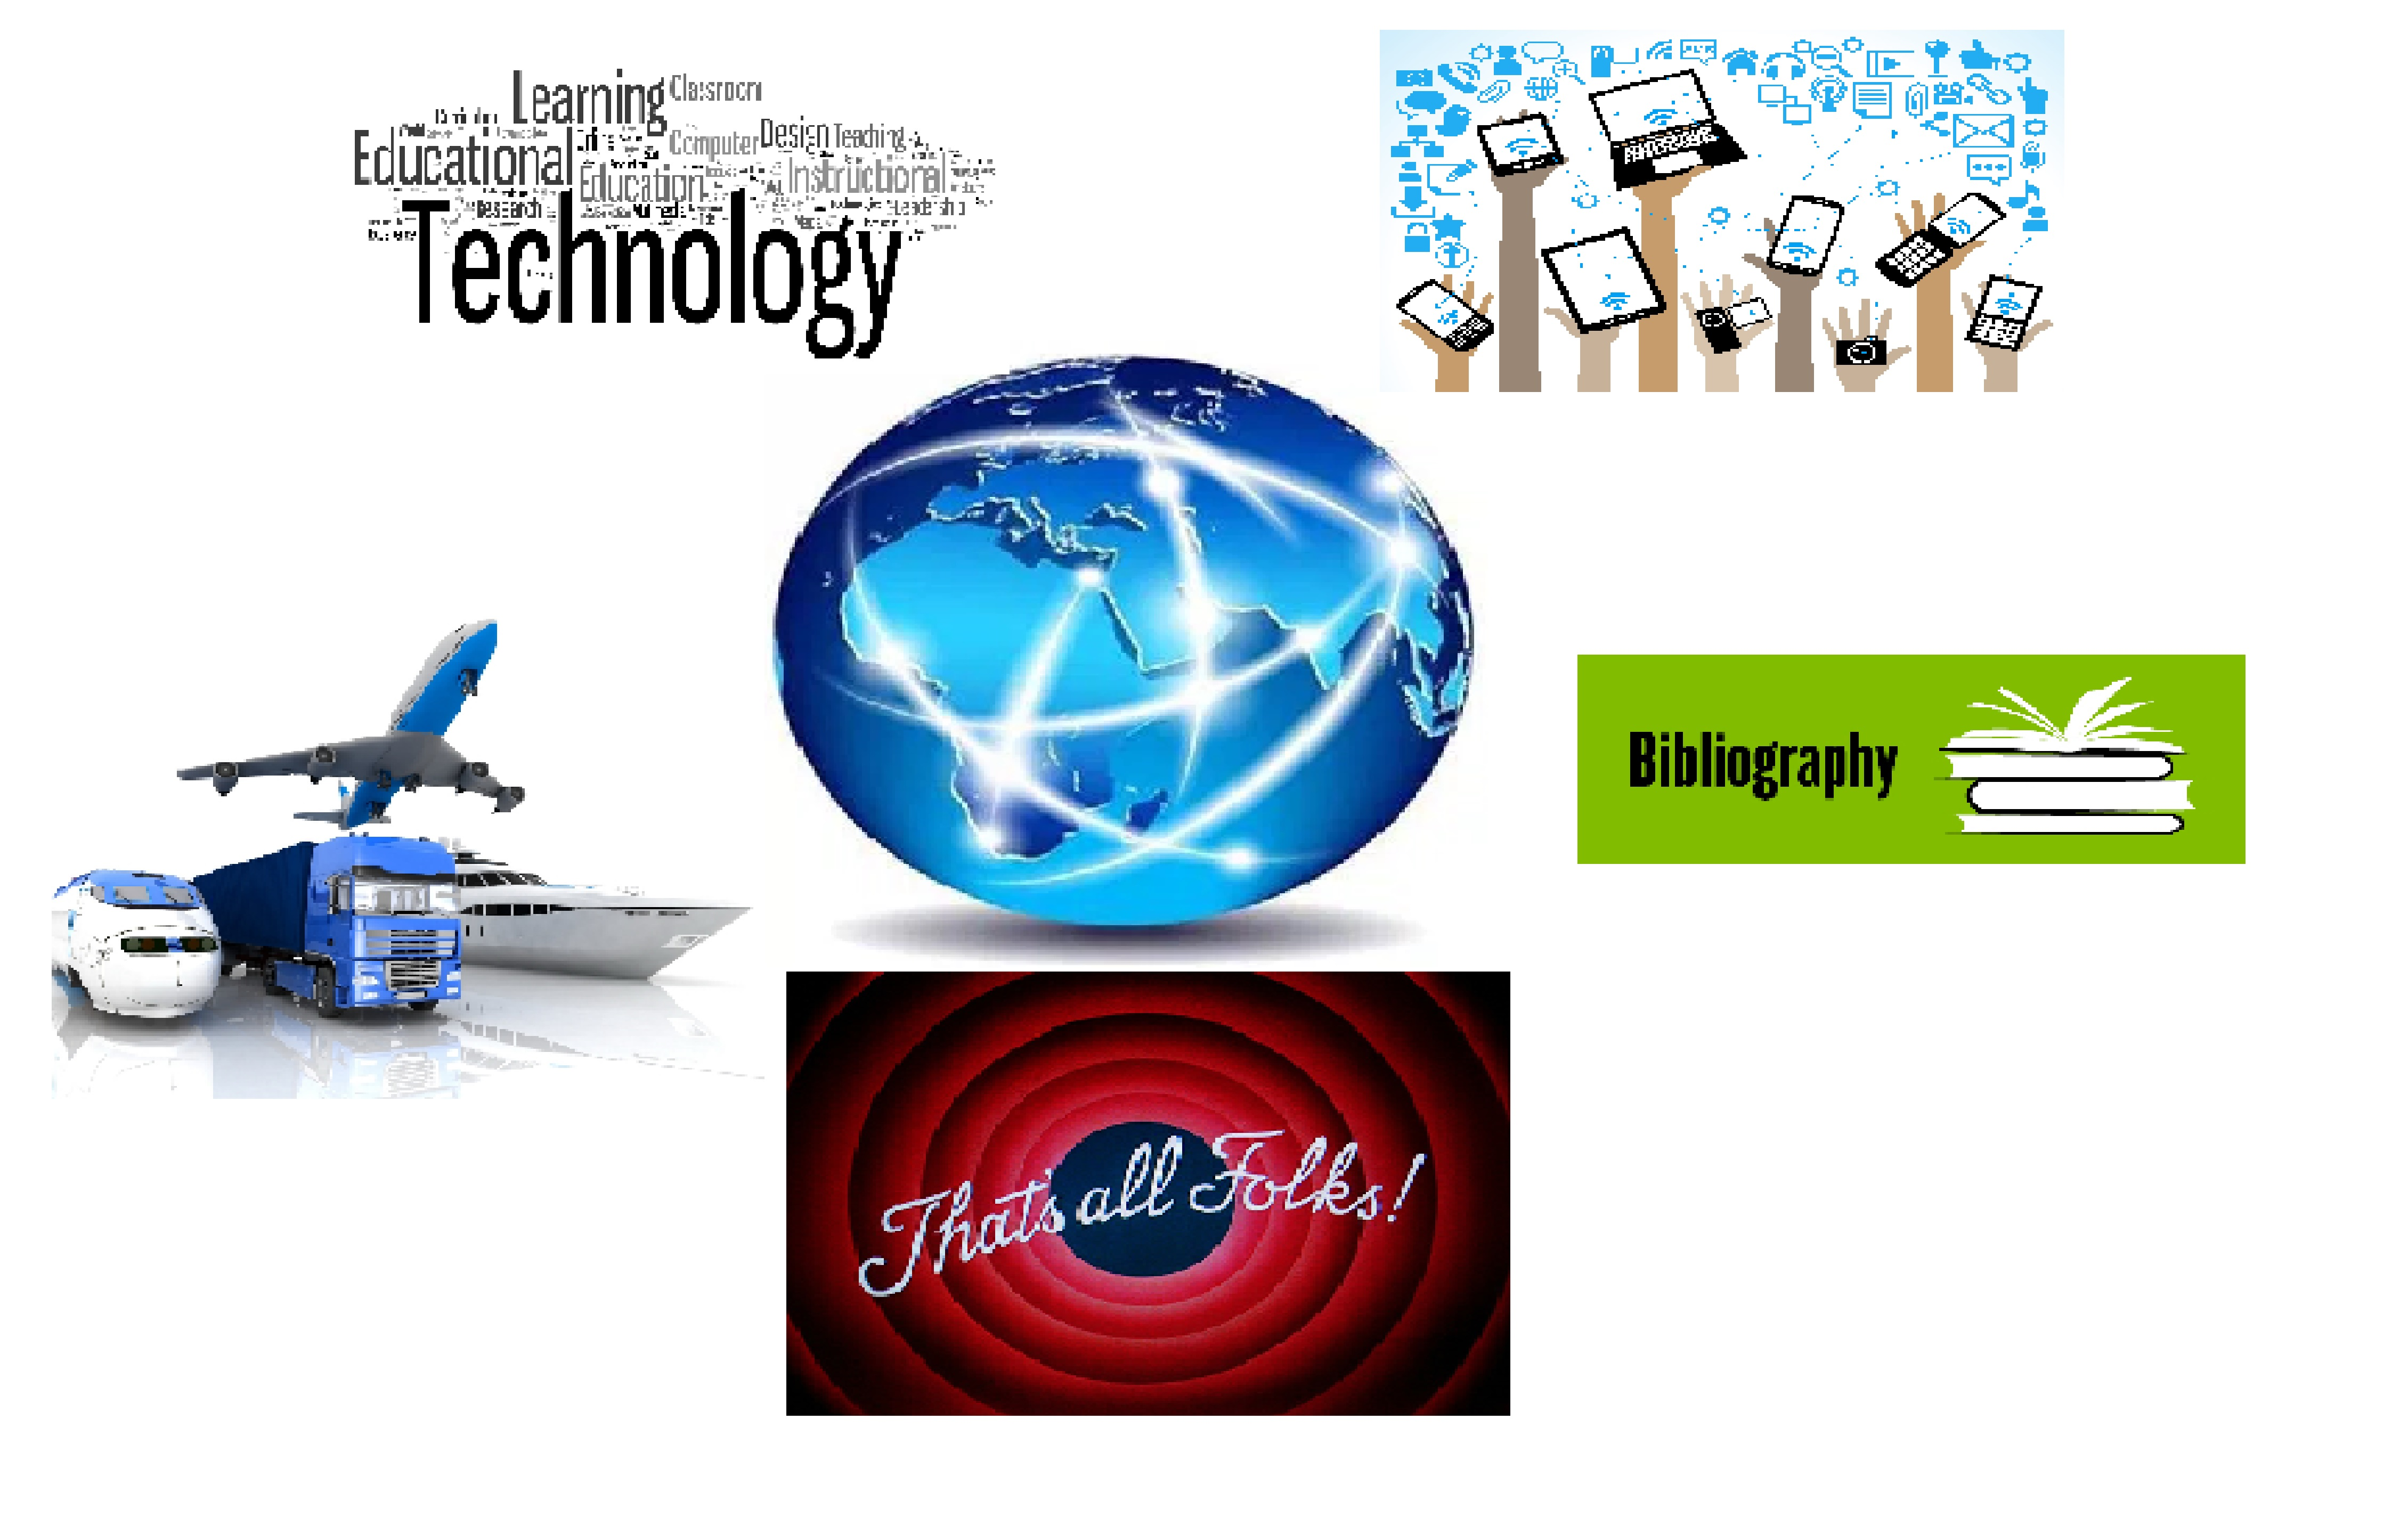 globalization through technology Globalization and technology are the major issues in the economic world today  while some believe globalization and technology have brought great benefits,.